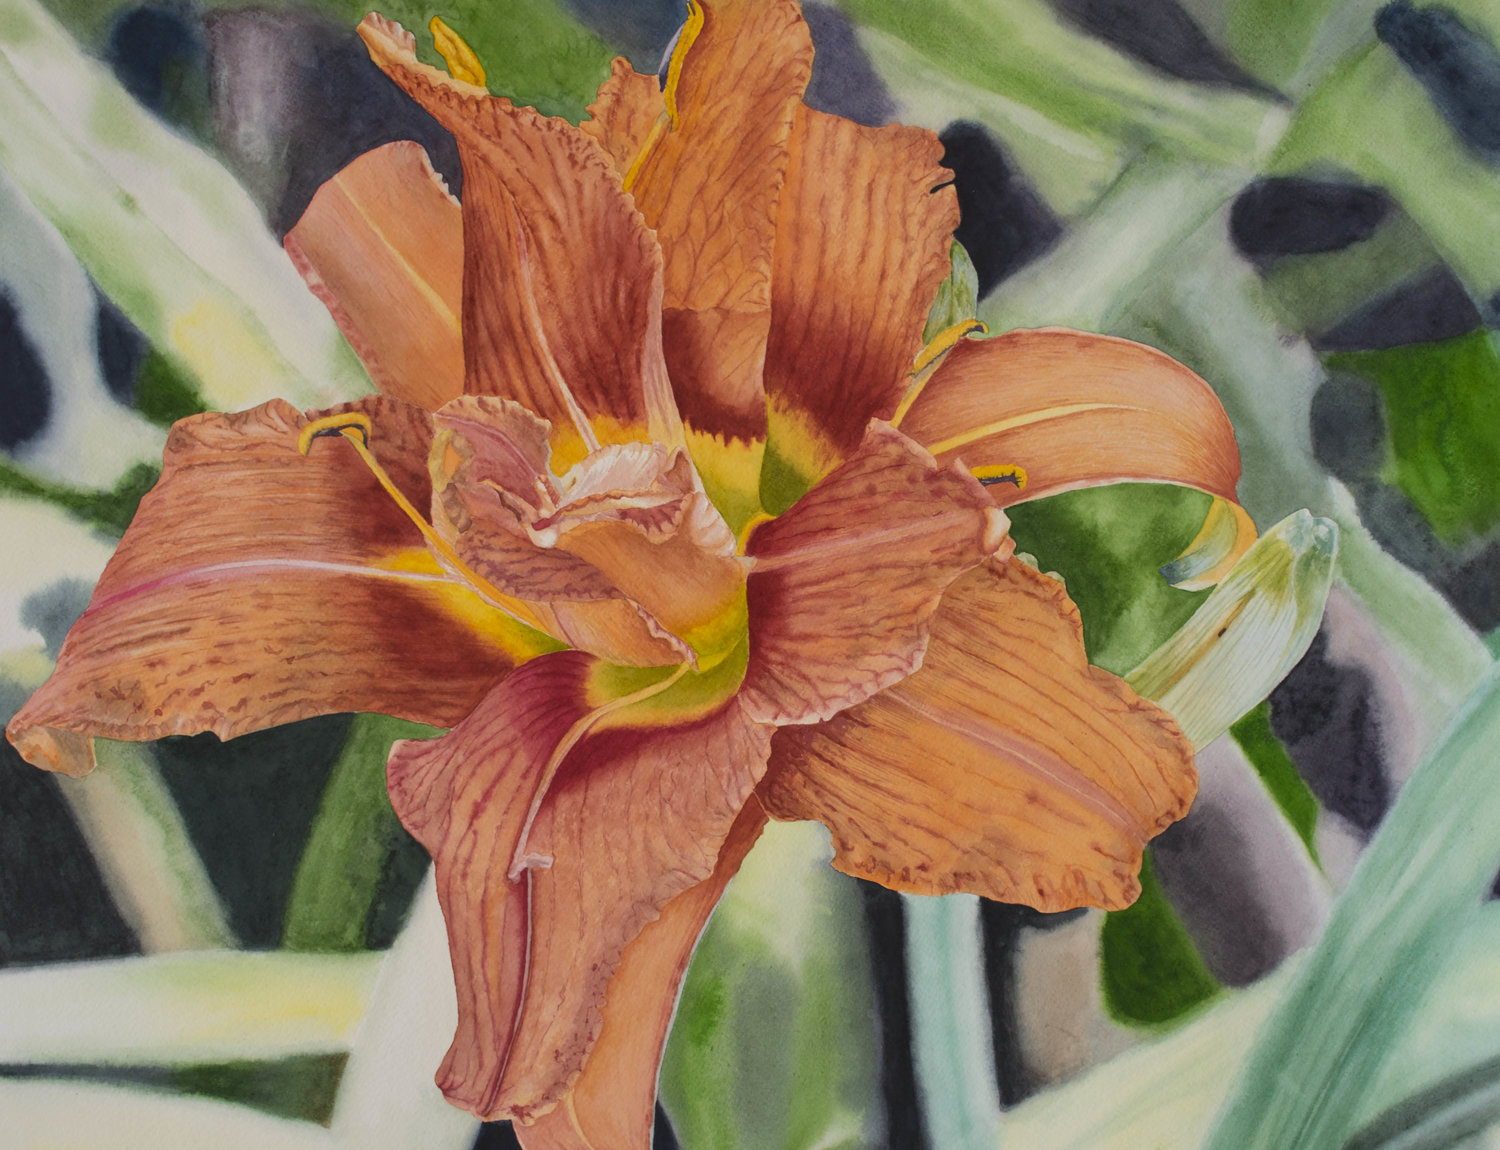 'Daylily', Eduvigis (Inma) Medina, Watercolour on paper, 66.4 x 50.8 cm